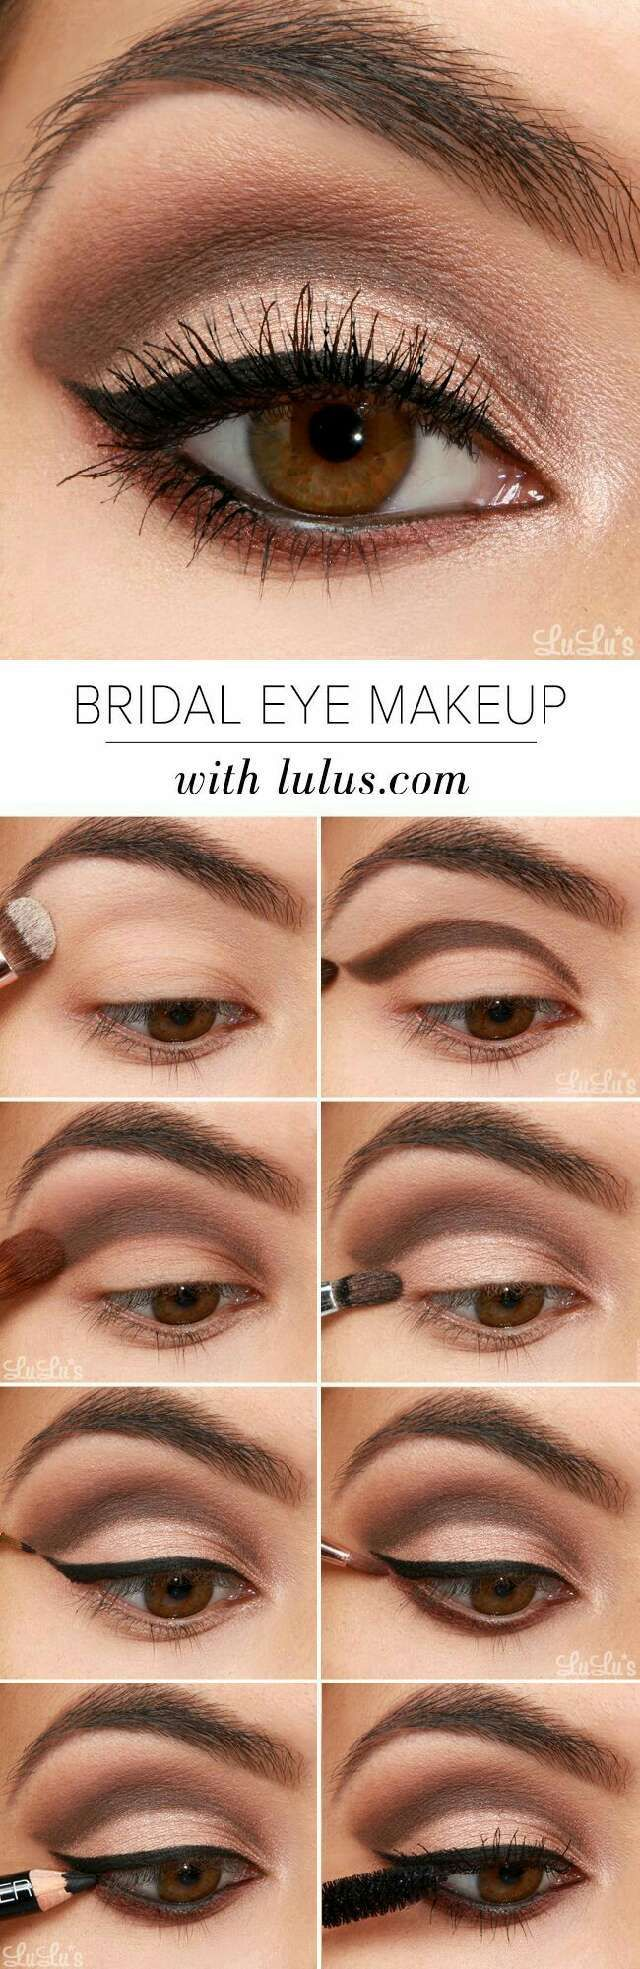 How-to Eye Makeup For Brown Eyes Trusper http://rskfashion.co.uk